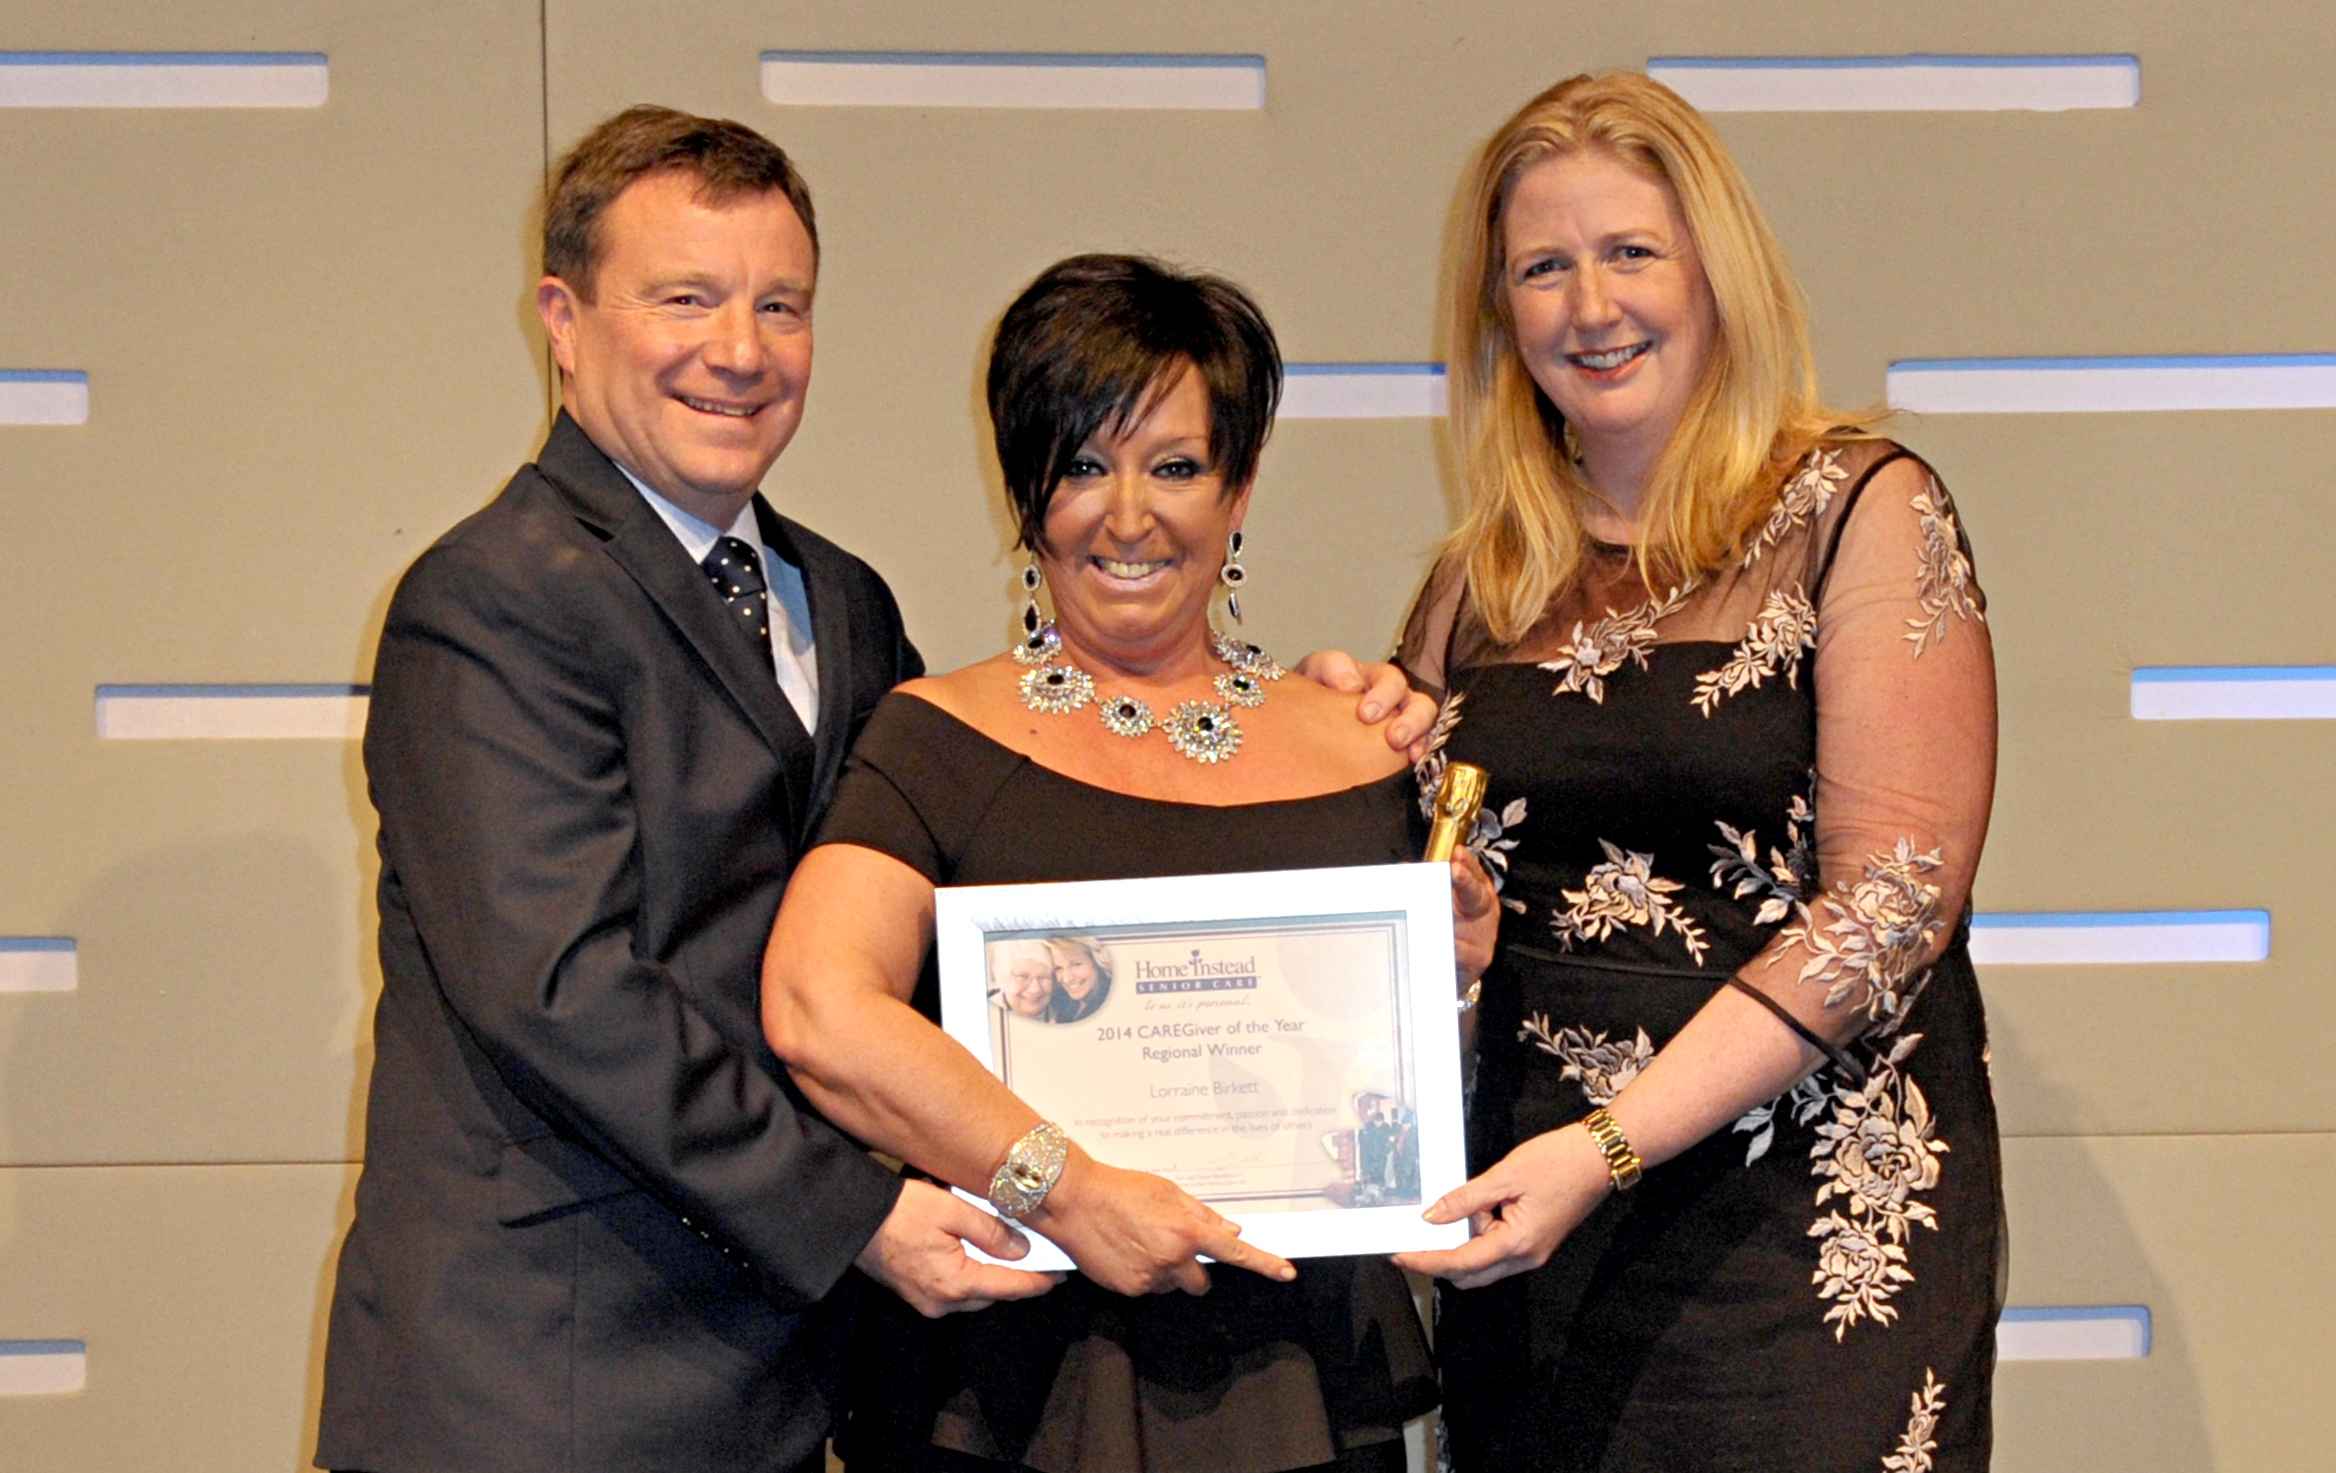 Home Instead Newcastle-upon-Tyne CAREgiver Lorraine Birkett receiving her '2014 Caregiver of the Year' award